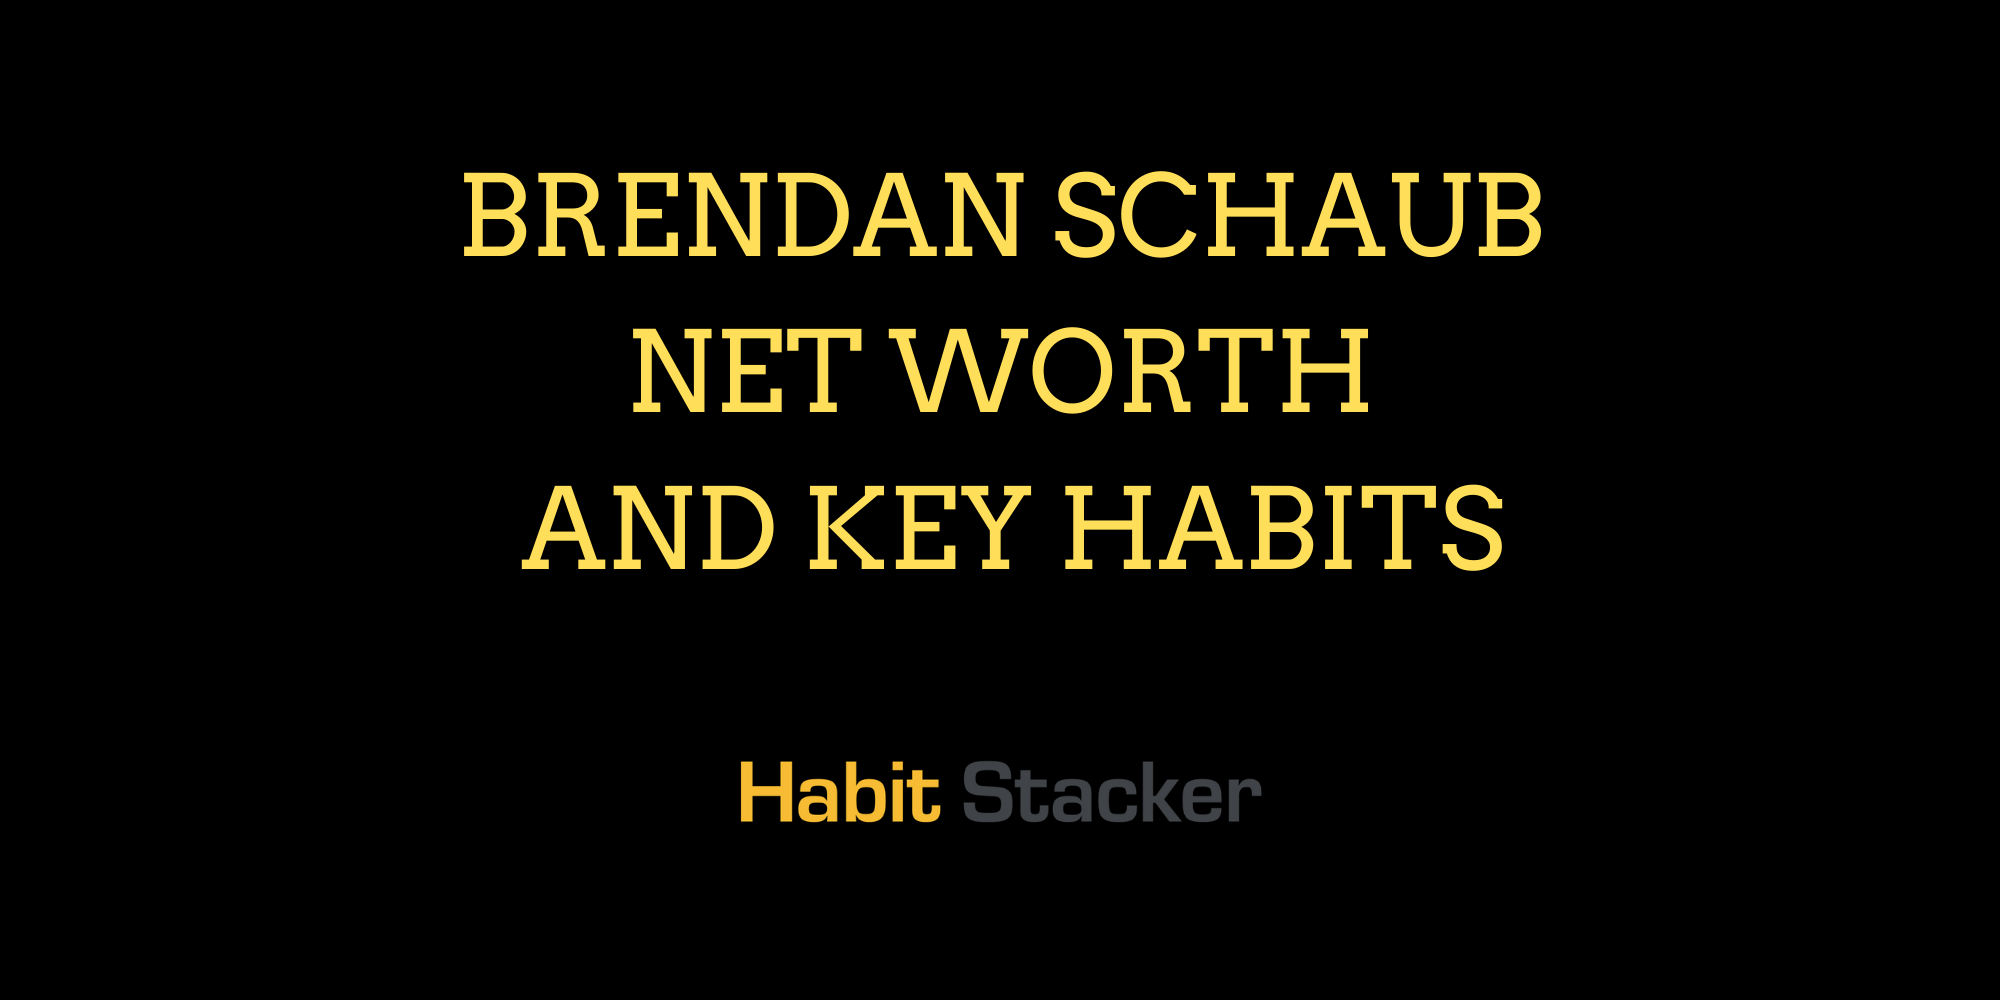 Brendan Schaub Net Worth and Key Habits